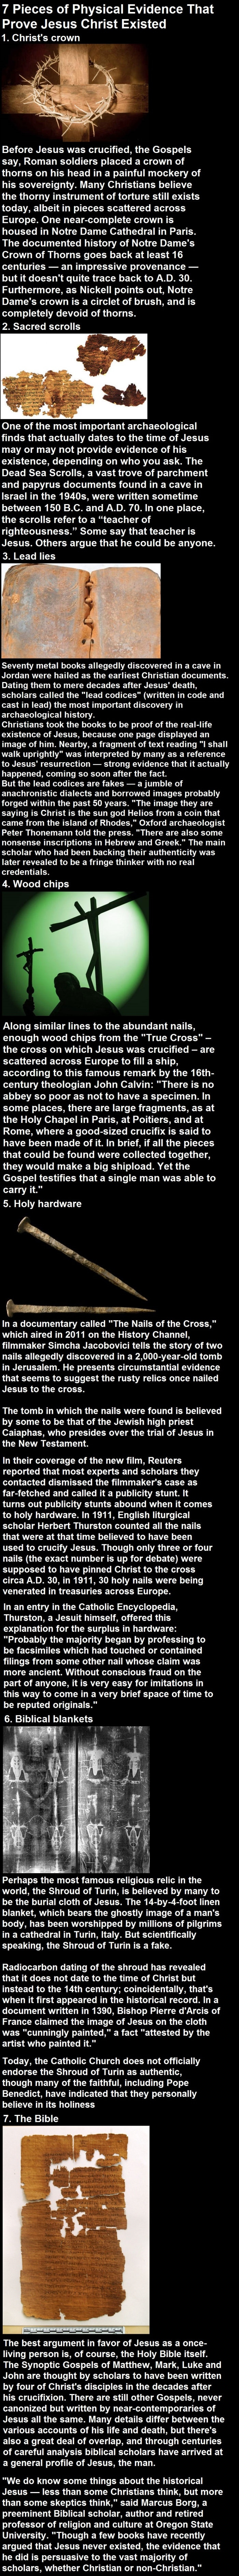 Physical evidence that prove Jesus existed